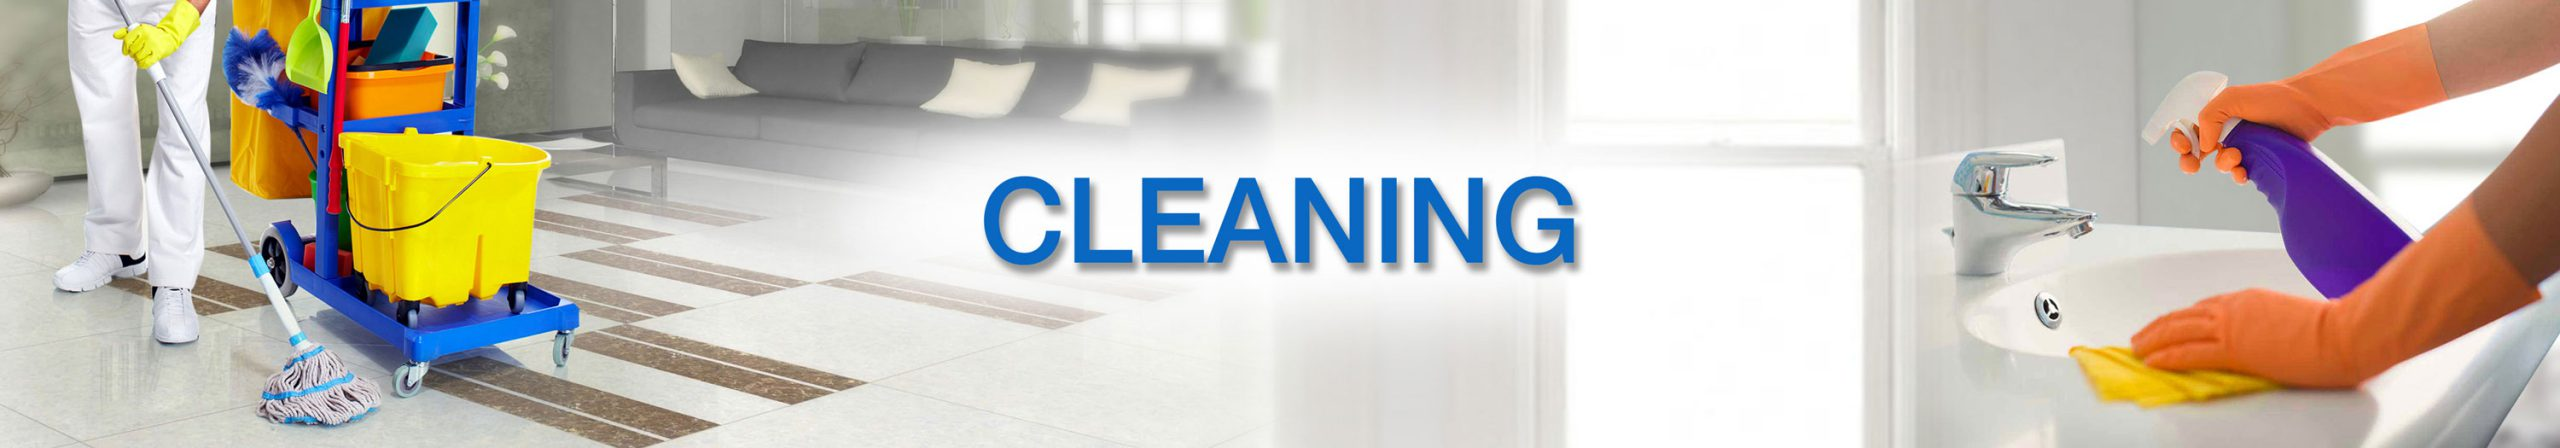 cleaning services london